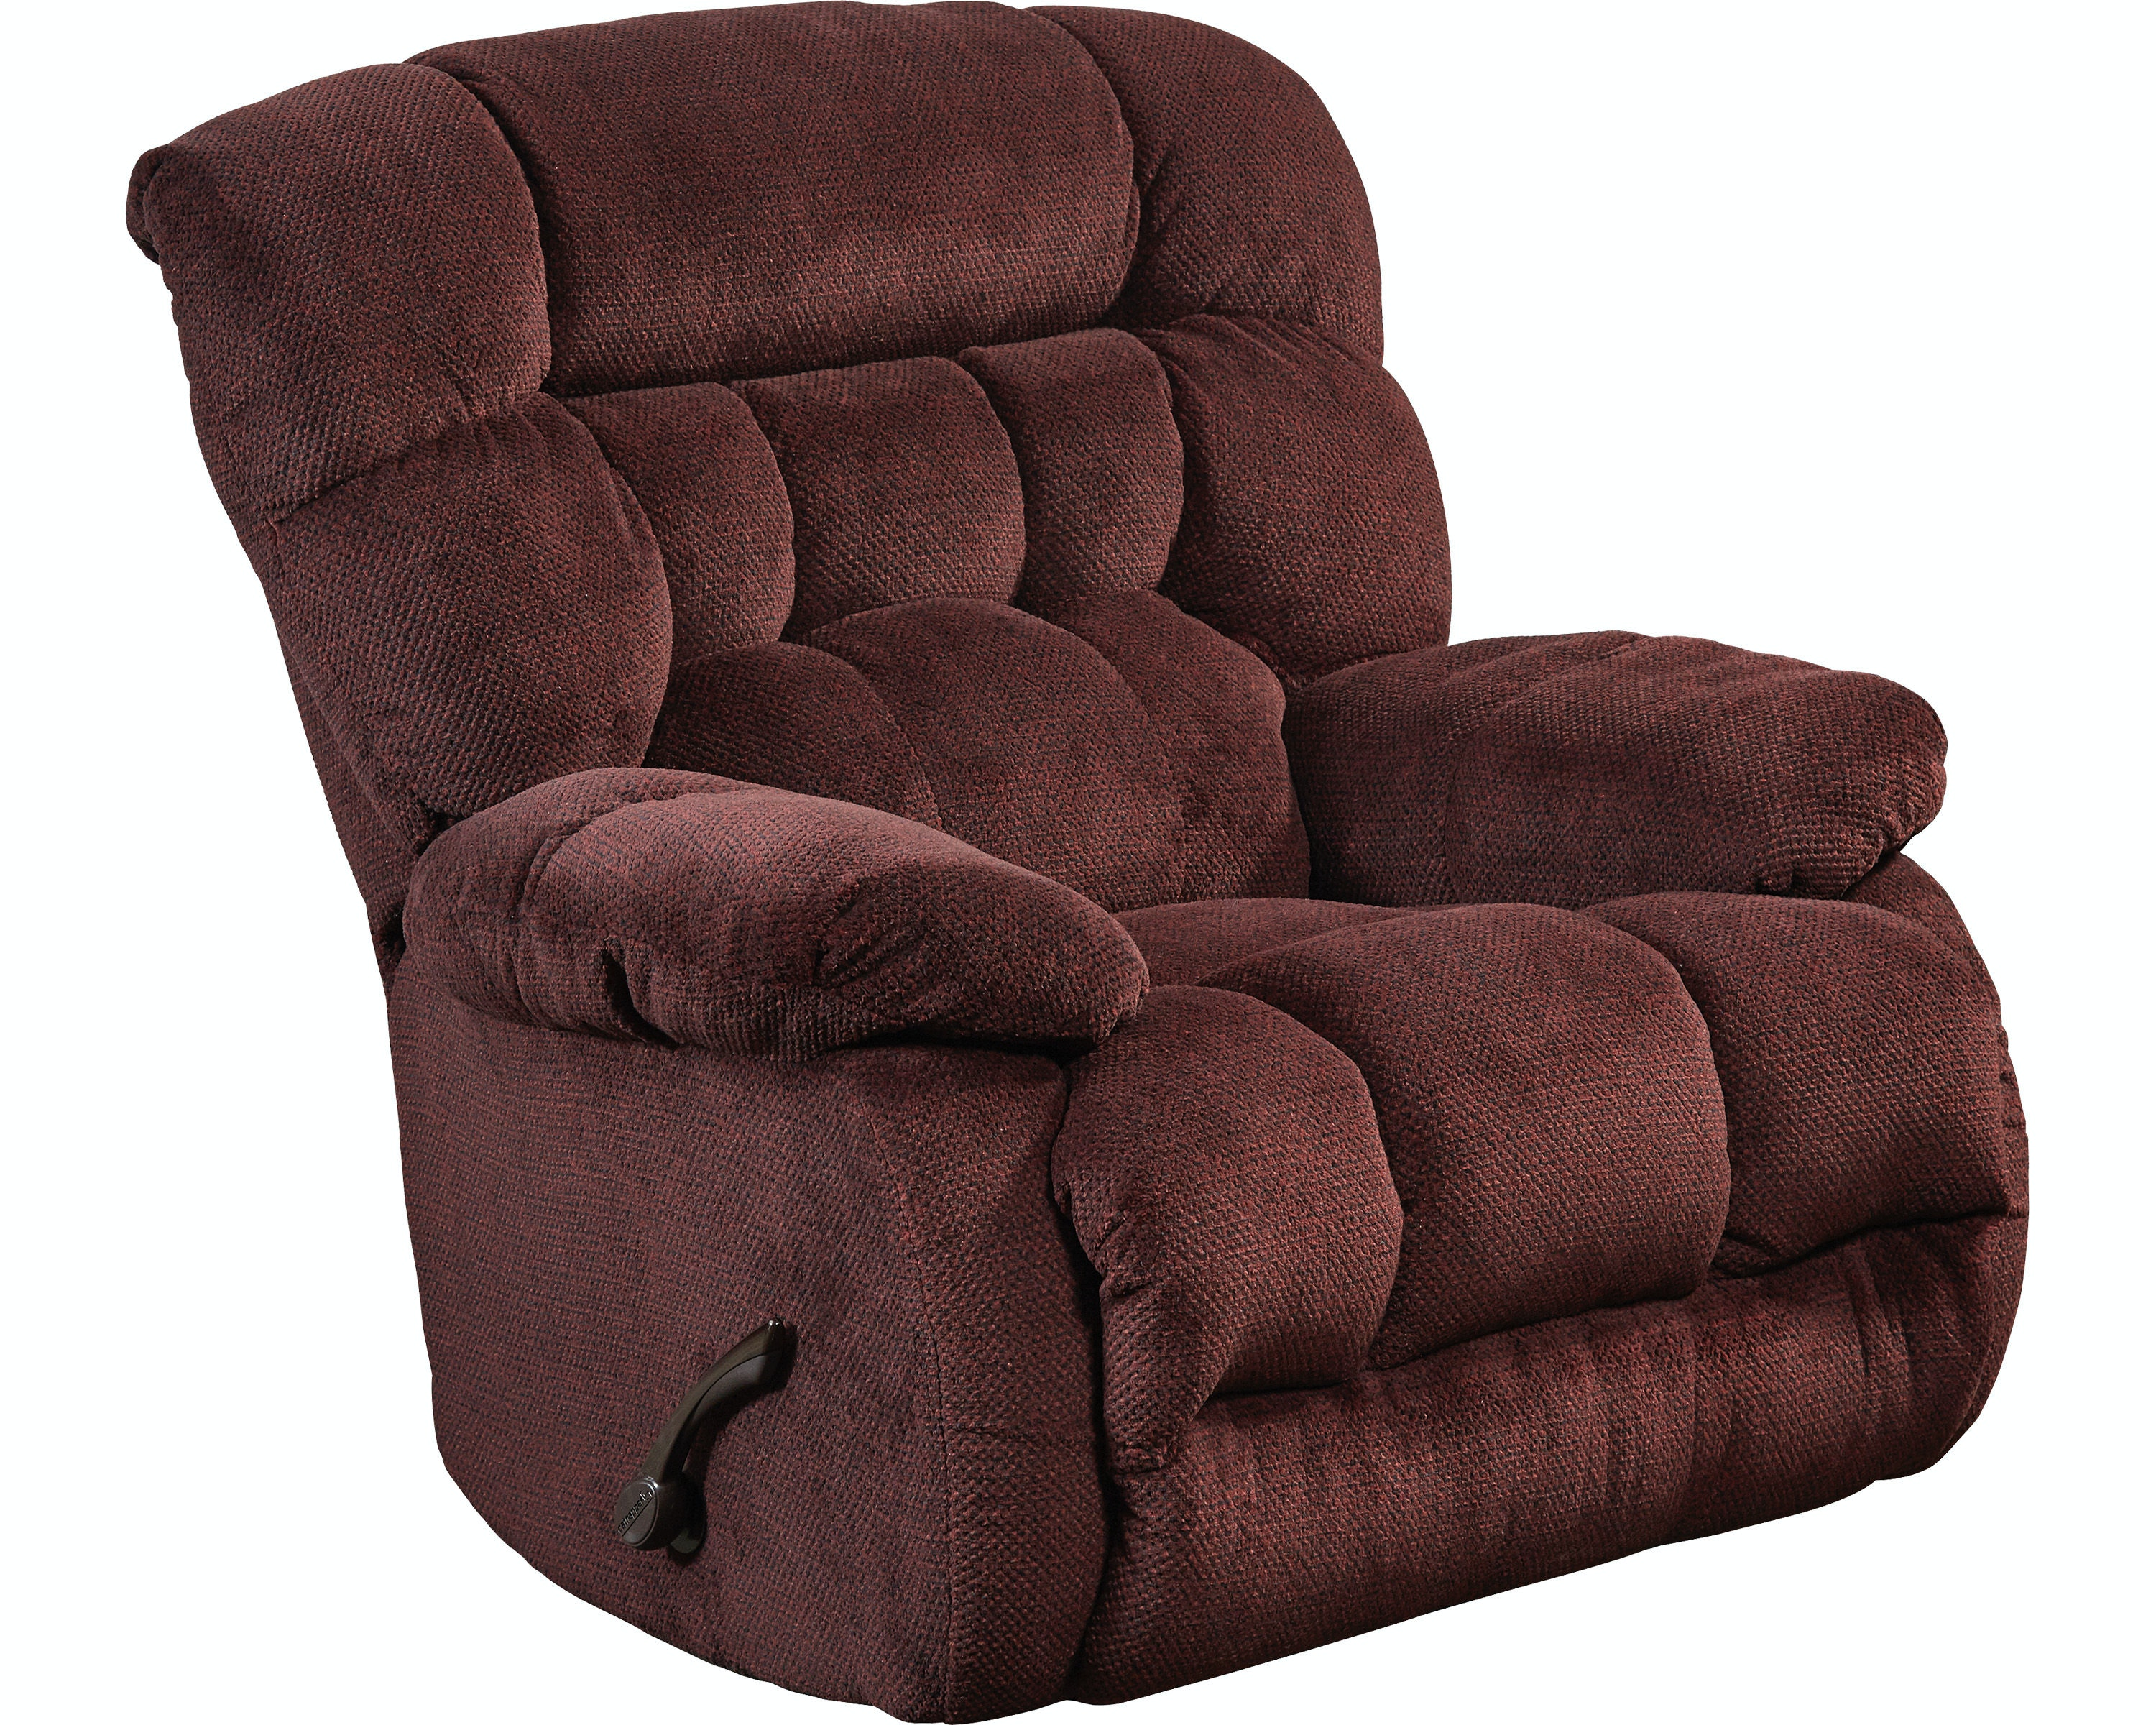 Catnapper Furniture Chaise Rocker Recliner 47652  sc 1 st  Gibson Furniture & Catnapper Furniture Living Room Chaise Rocker Recliner 47652 ... islam-shia.org